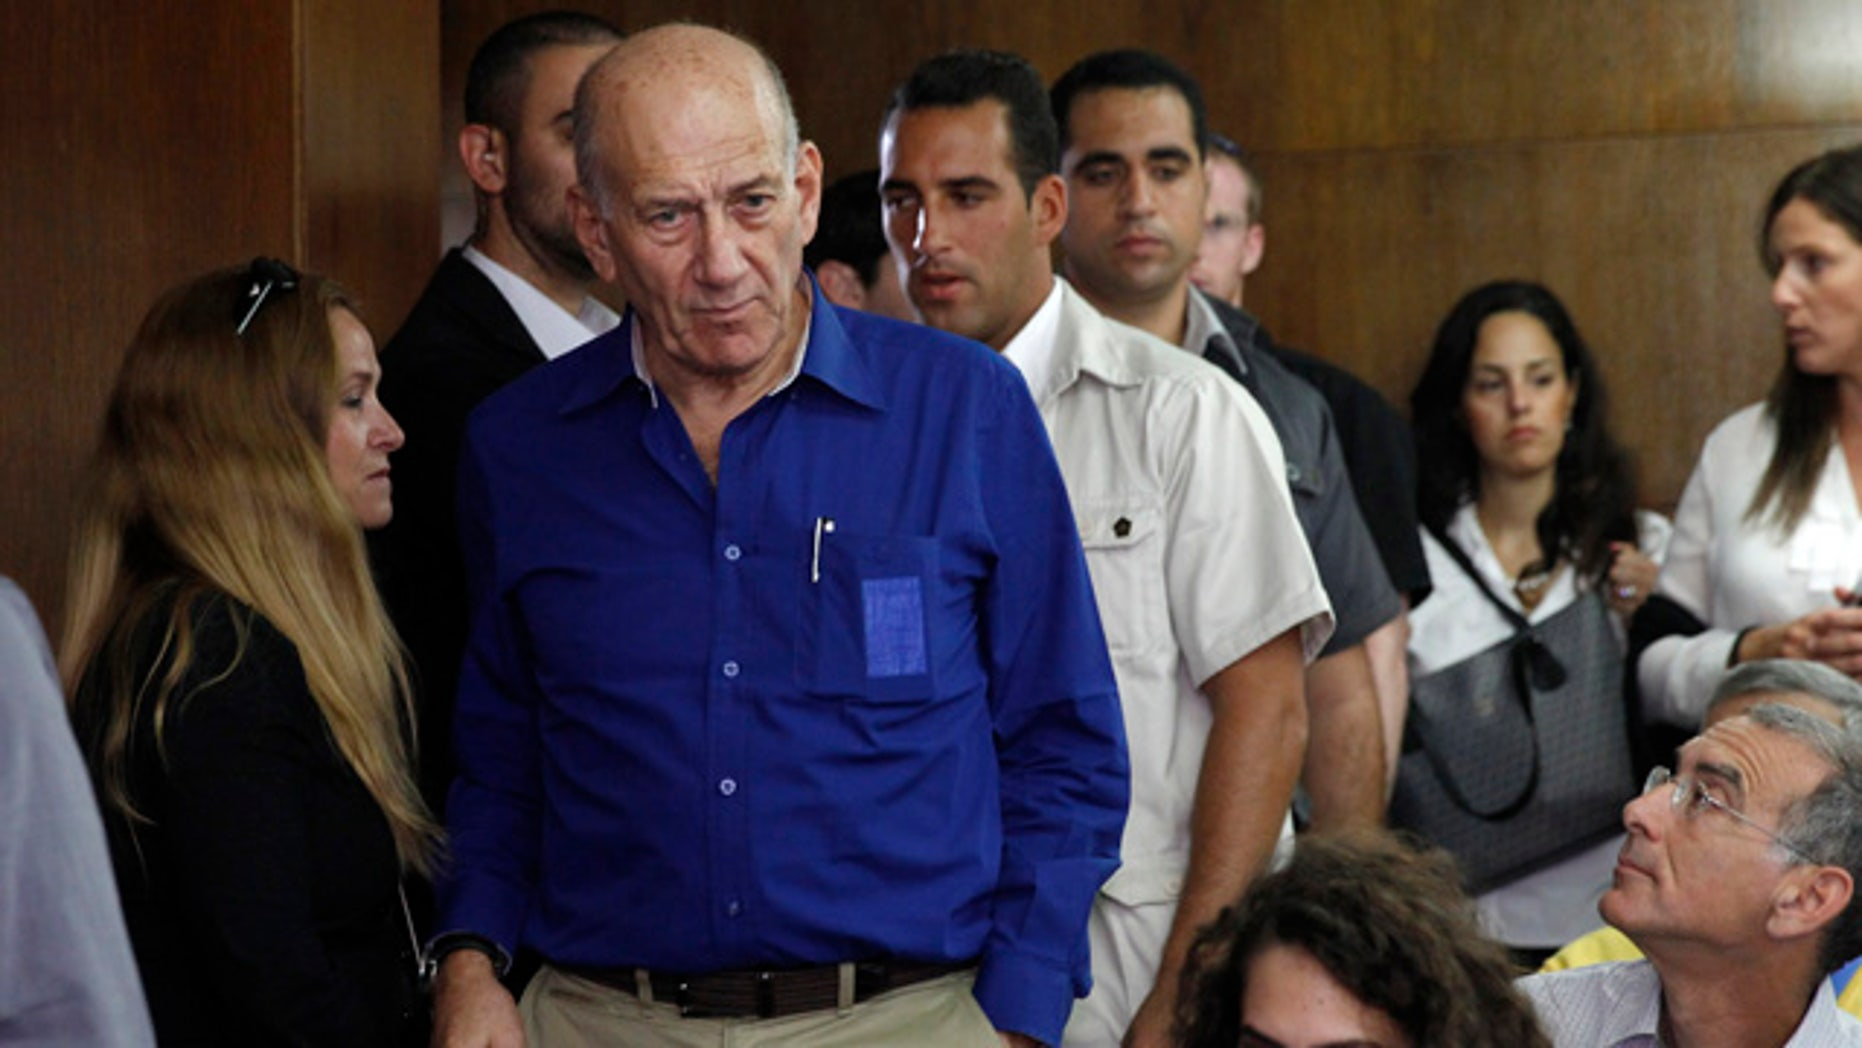 FILE - This May 13, 2014, file photo shows Israel's former Prime Minister Ehud Olmert at the Tel Aviv District Court in Israel. (AP Photo/Finbarr O'Reilly, File)